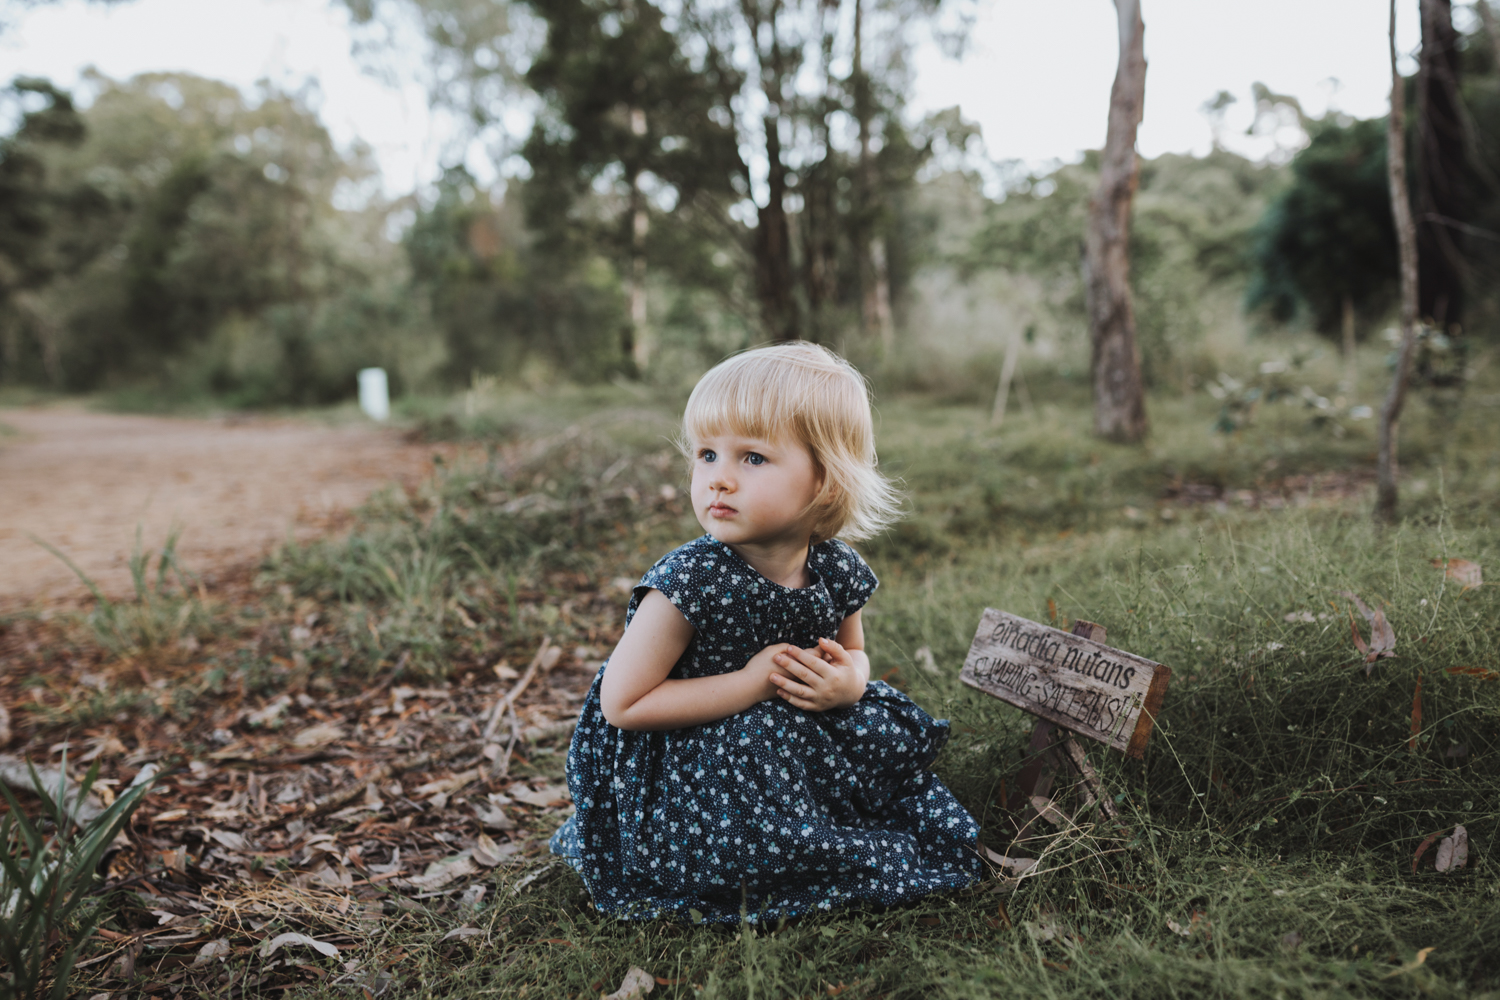 Child sits in nature in vintage dress.